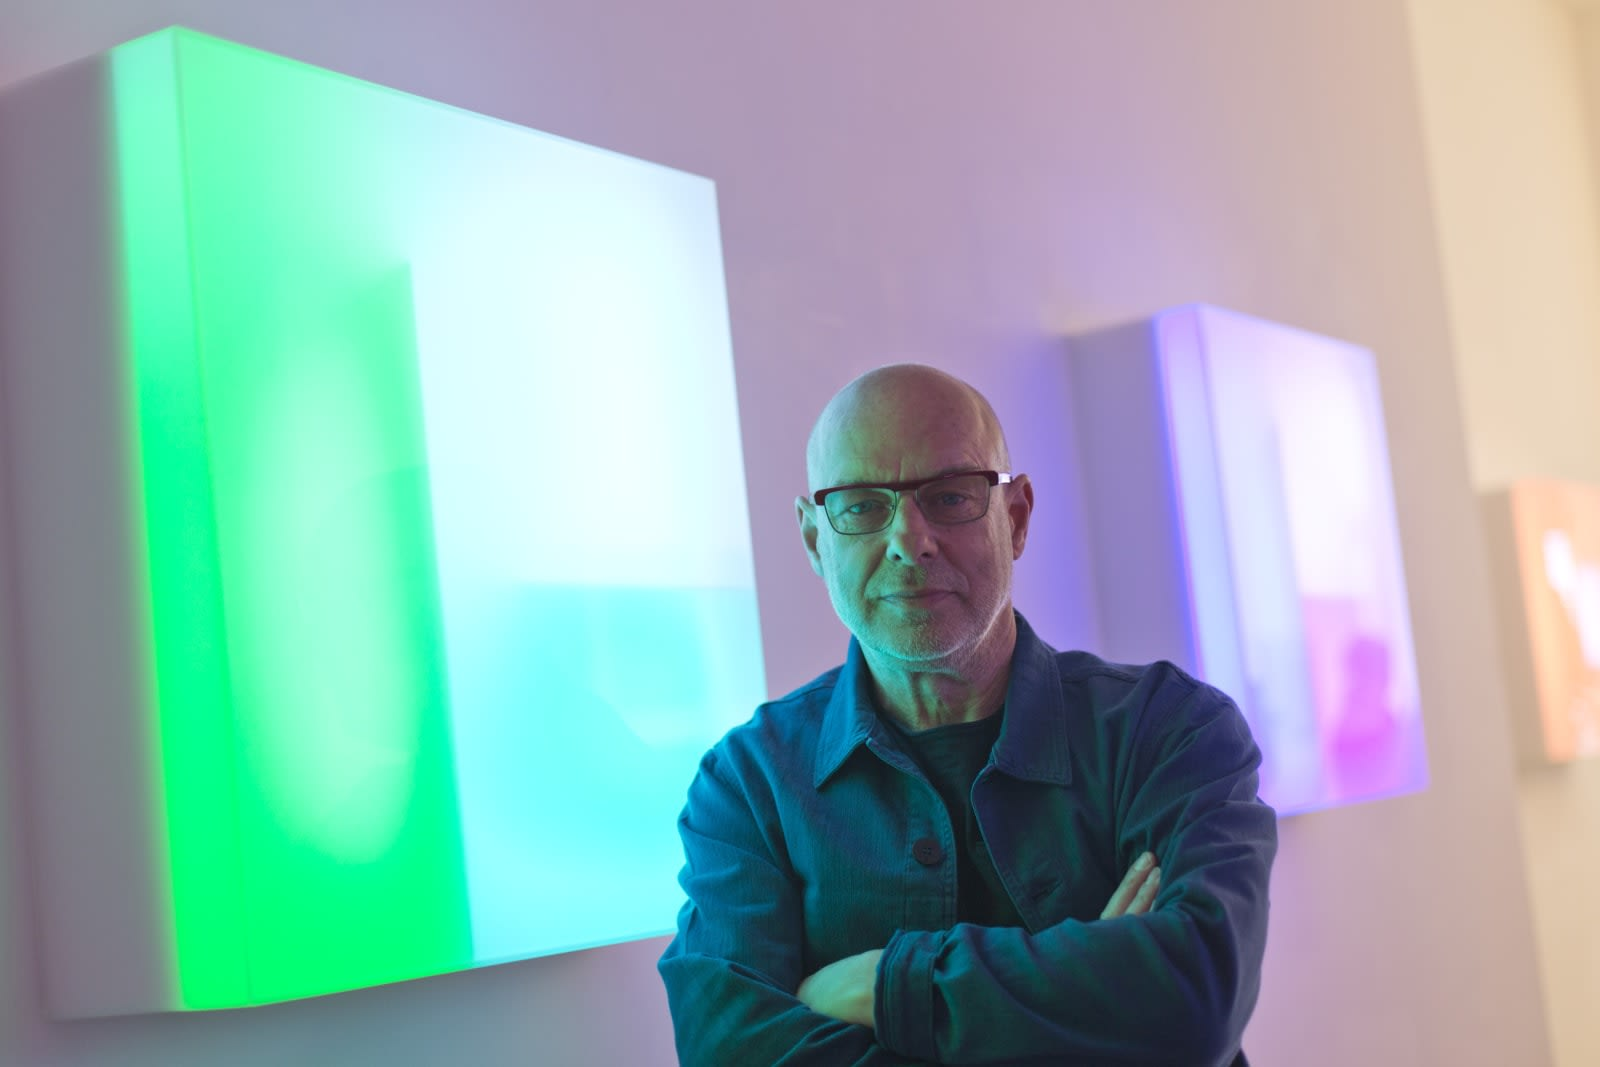 Brian Eno's music creation app is coming to Android, 10 years late